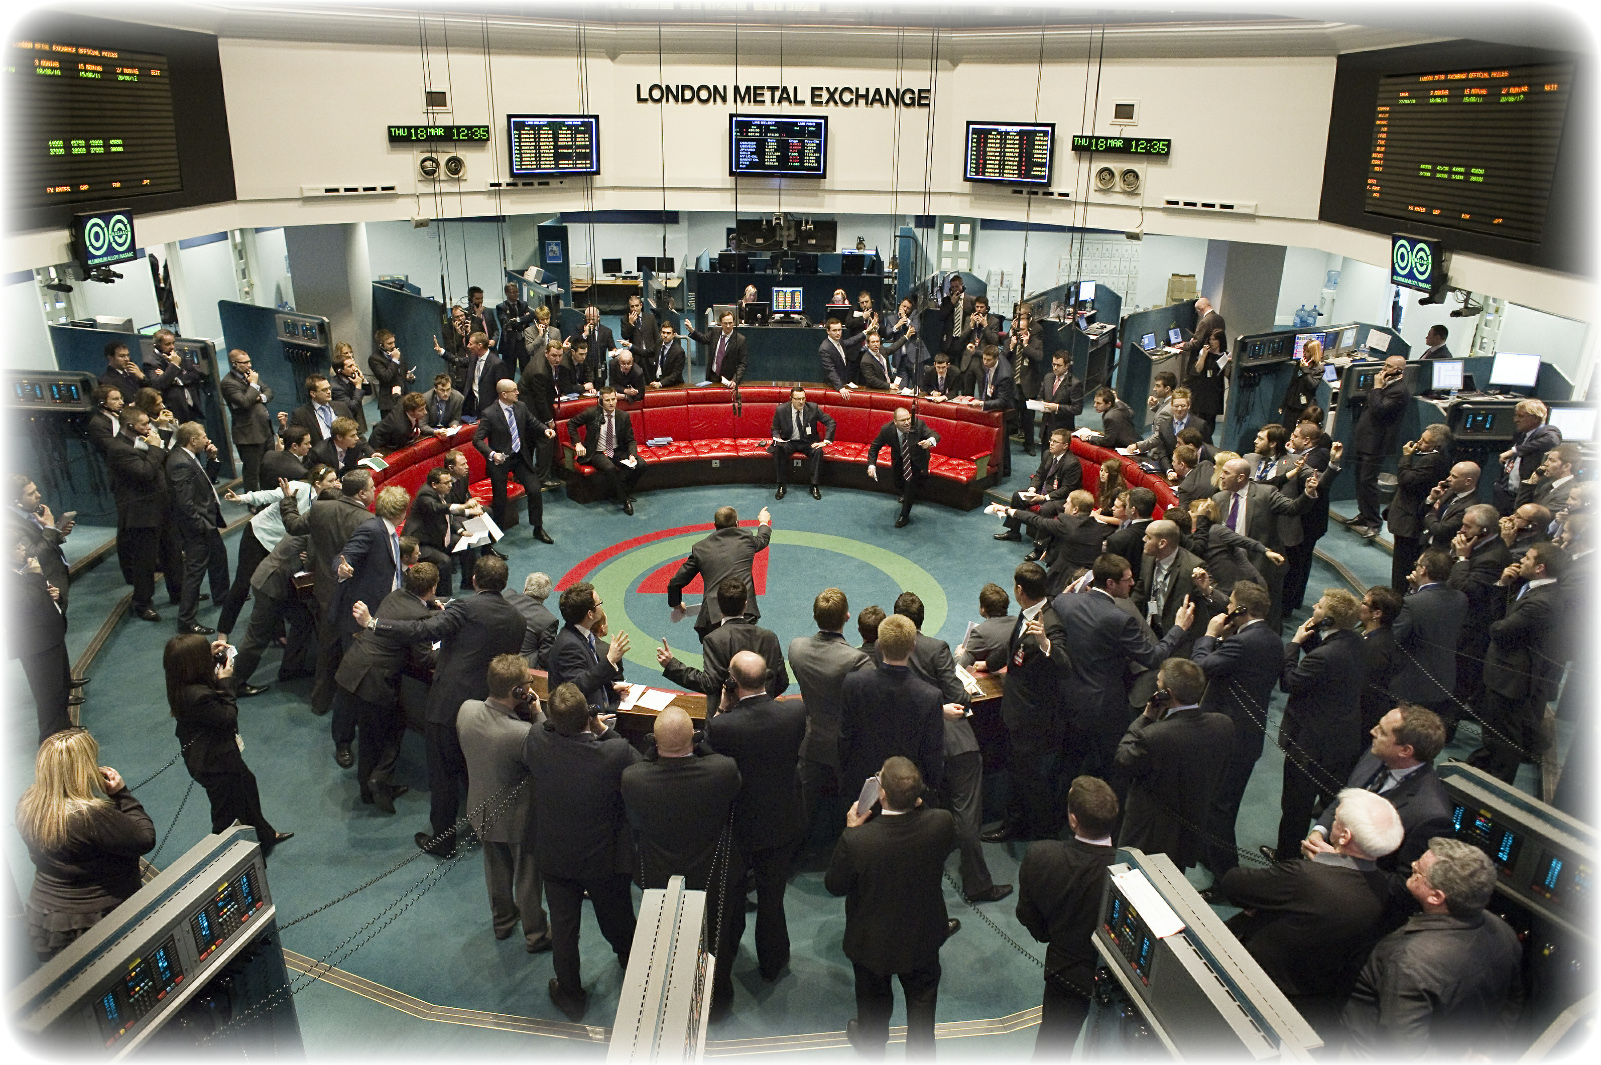 Lme traded options committee